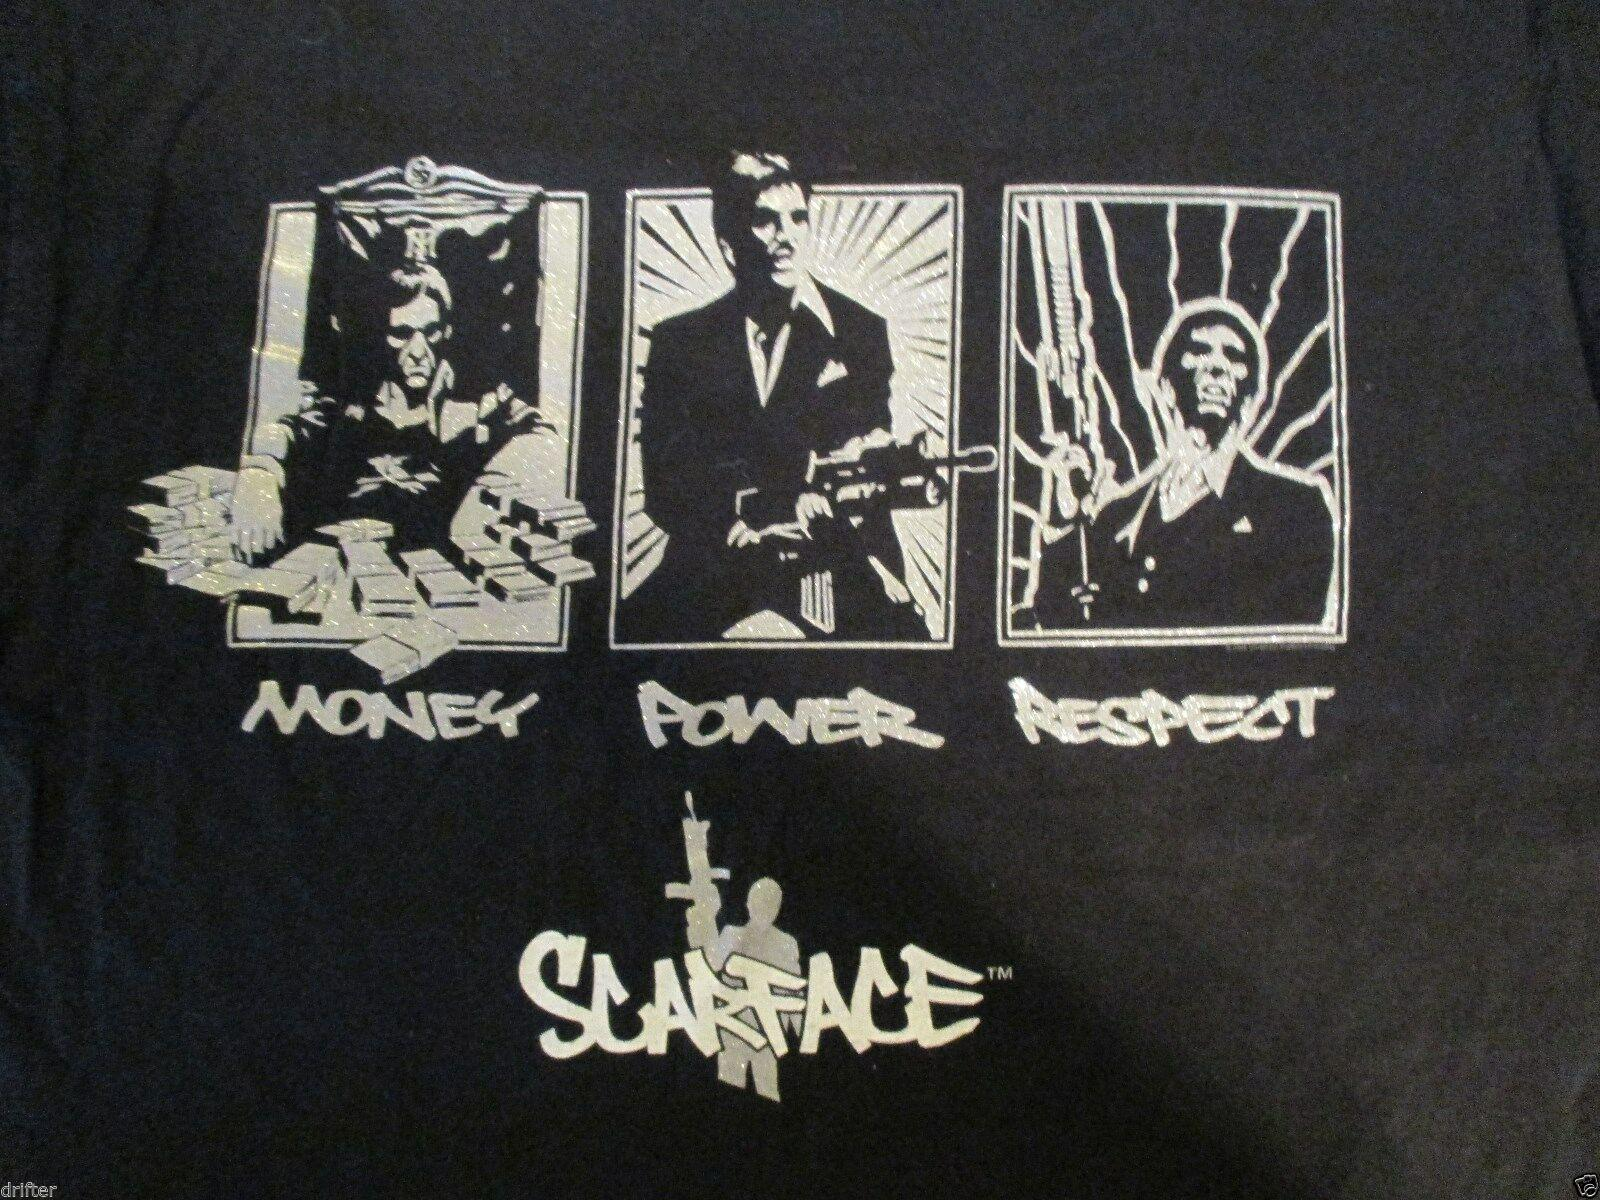 Scarface Money Power Respect T Shirt Taglia L Uomo Donna Unisex Fashion tshirt Spedizione gratuita nero